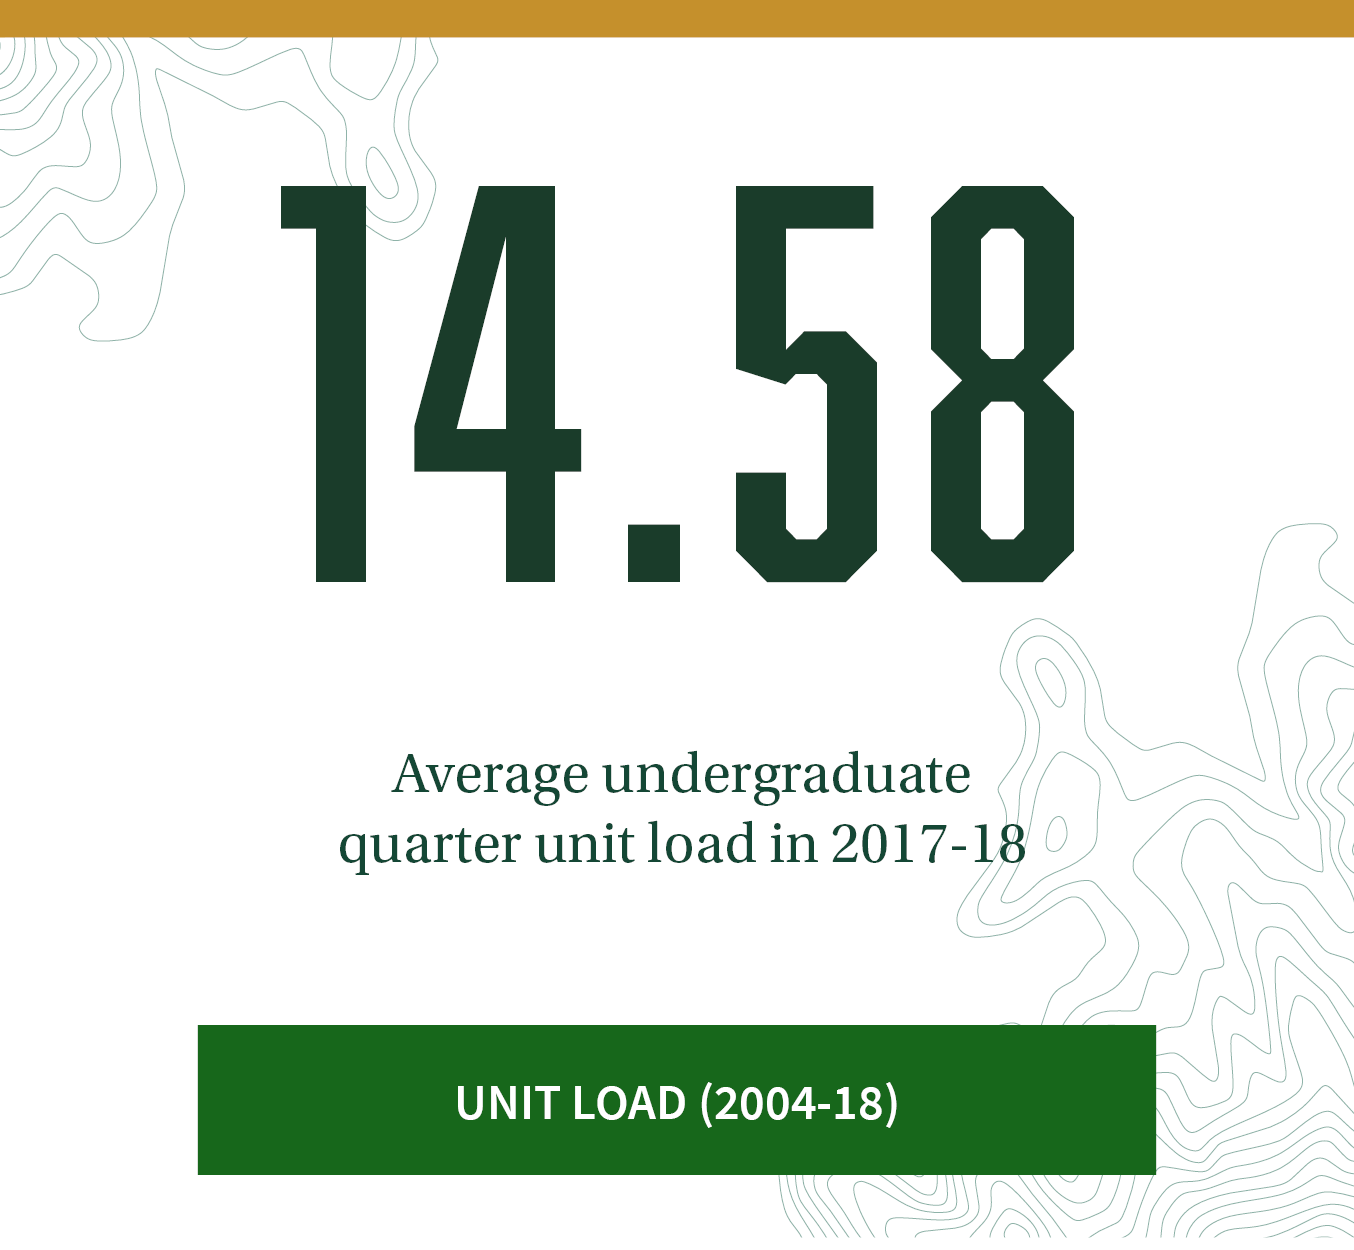 14.58. Average undergraduate unit load per quarter. Click here to see unit load trends between 2004-2018.